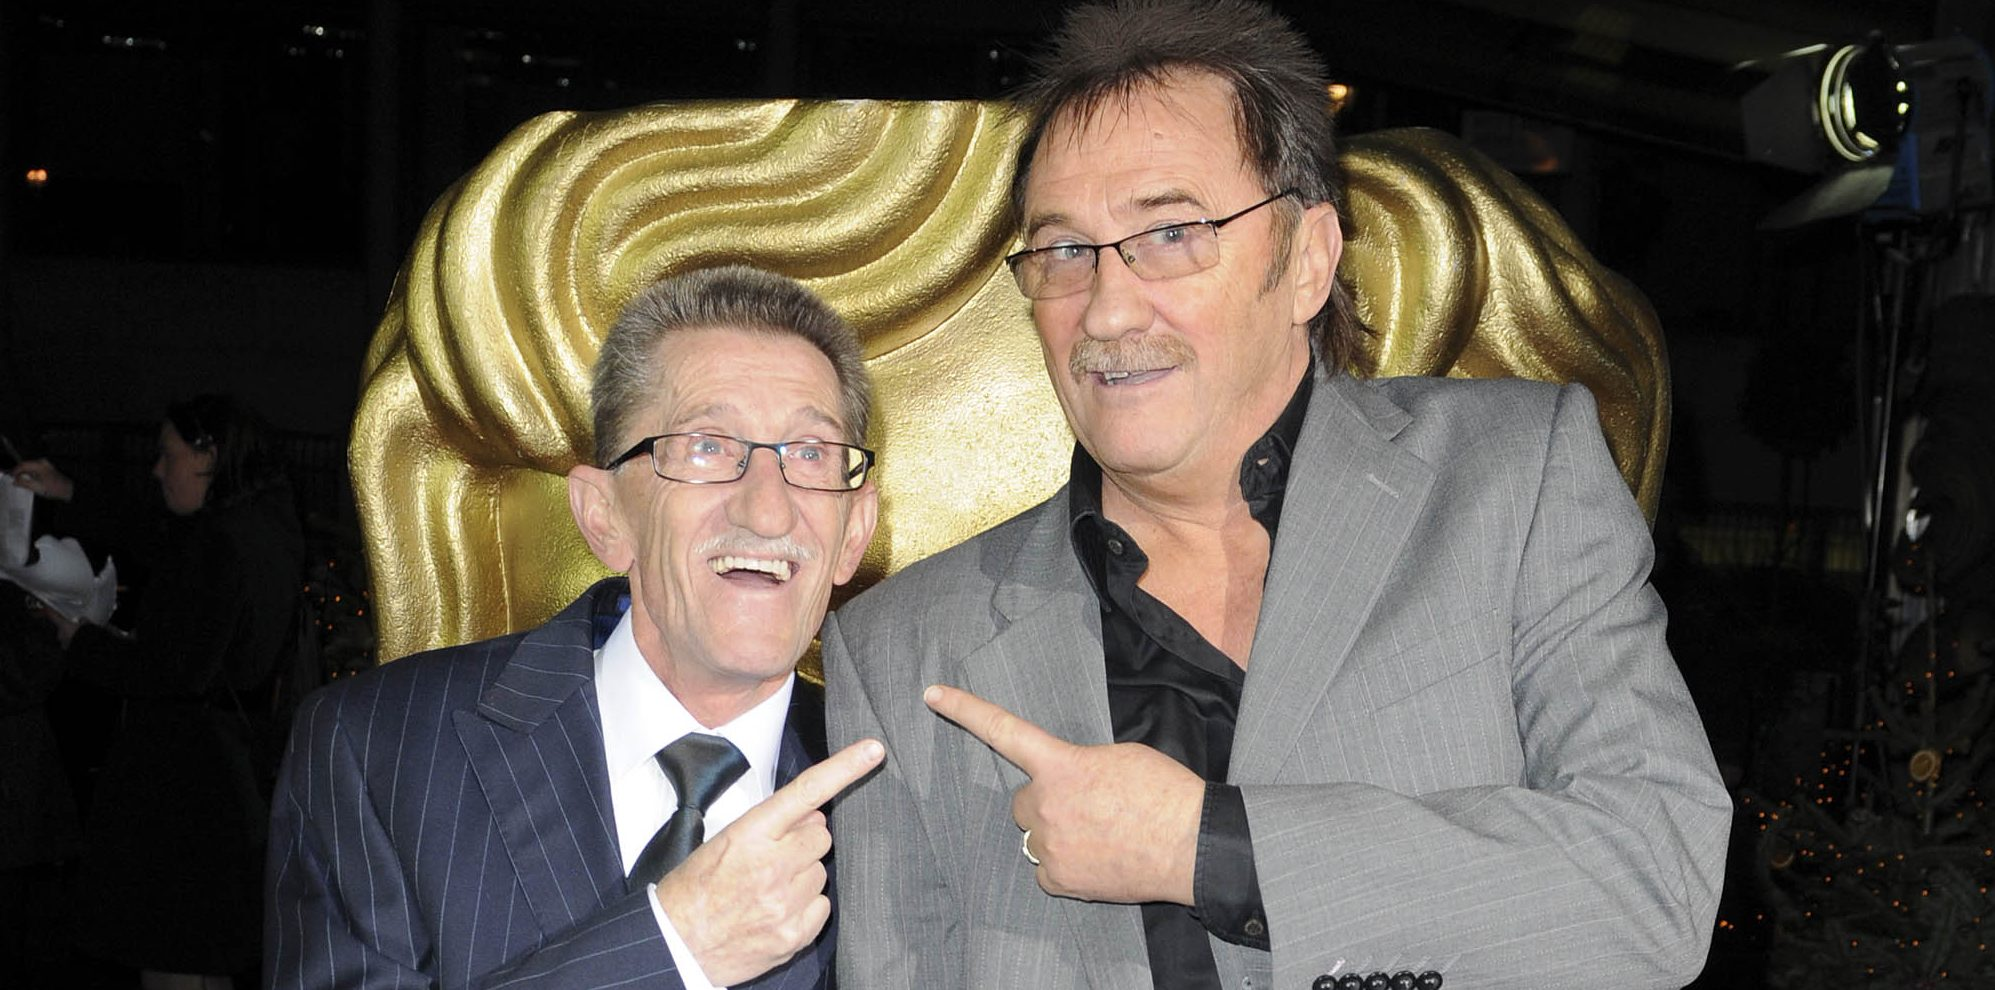 Paul Chuckle slams nightclub for 'totally disrespectful' prop of Barry's grave